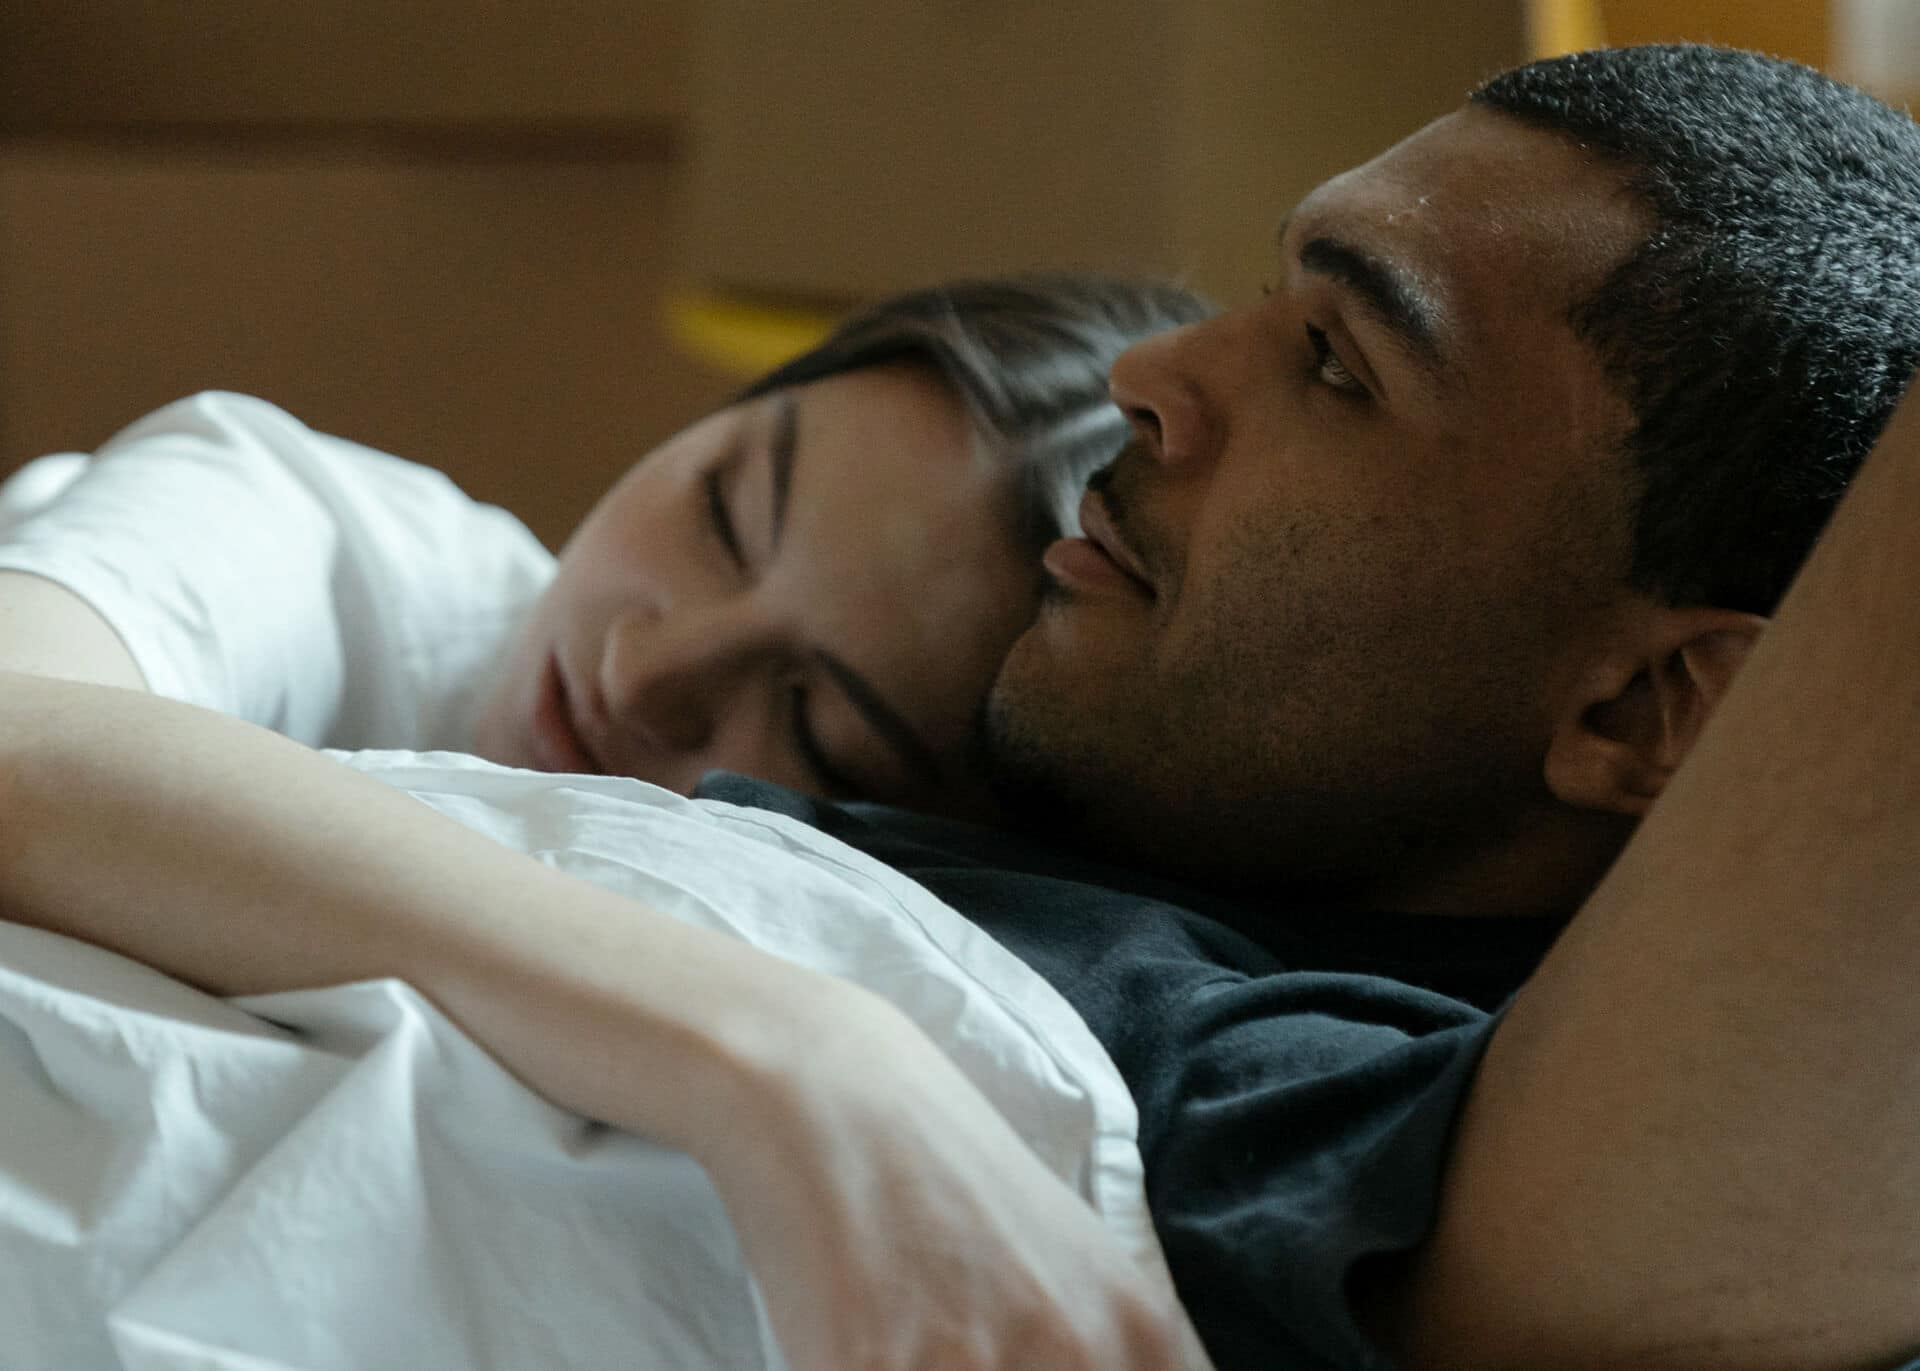 couple in bed with woman sleeping